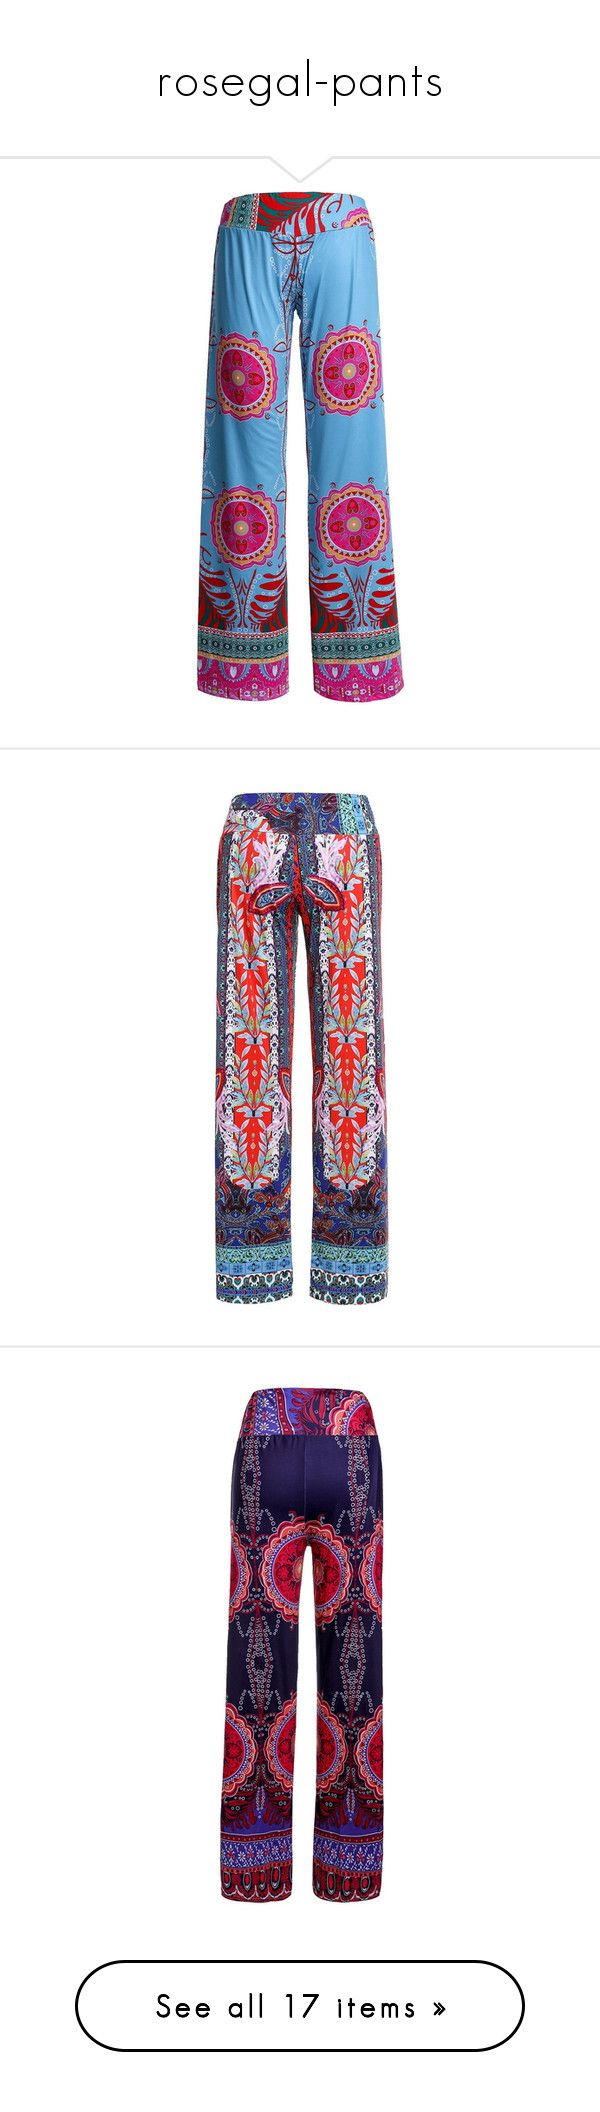 """rosegal-pants"" by fshionme ❤ liked on Polyvore featuring pants, bohemian pants, boho palazzo pants, straight pants, palazzo trousers, blue trousers, tribal print pants, palazzo pants, wide leg palazzo pants and tribal print trousers"